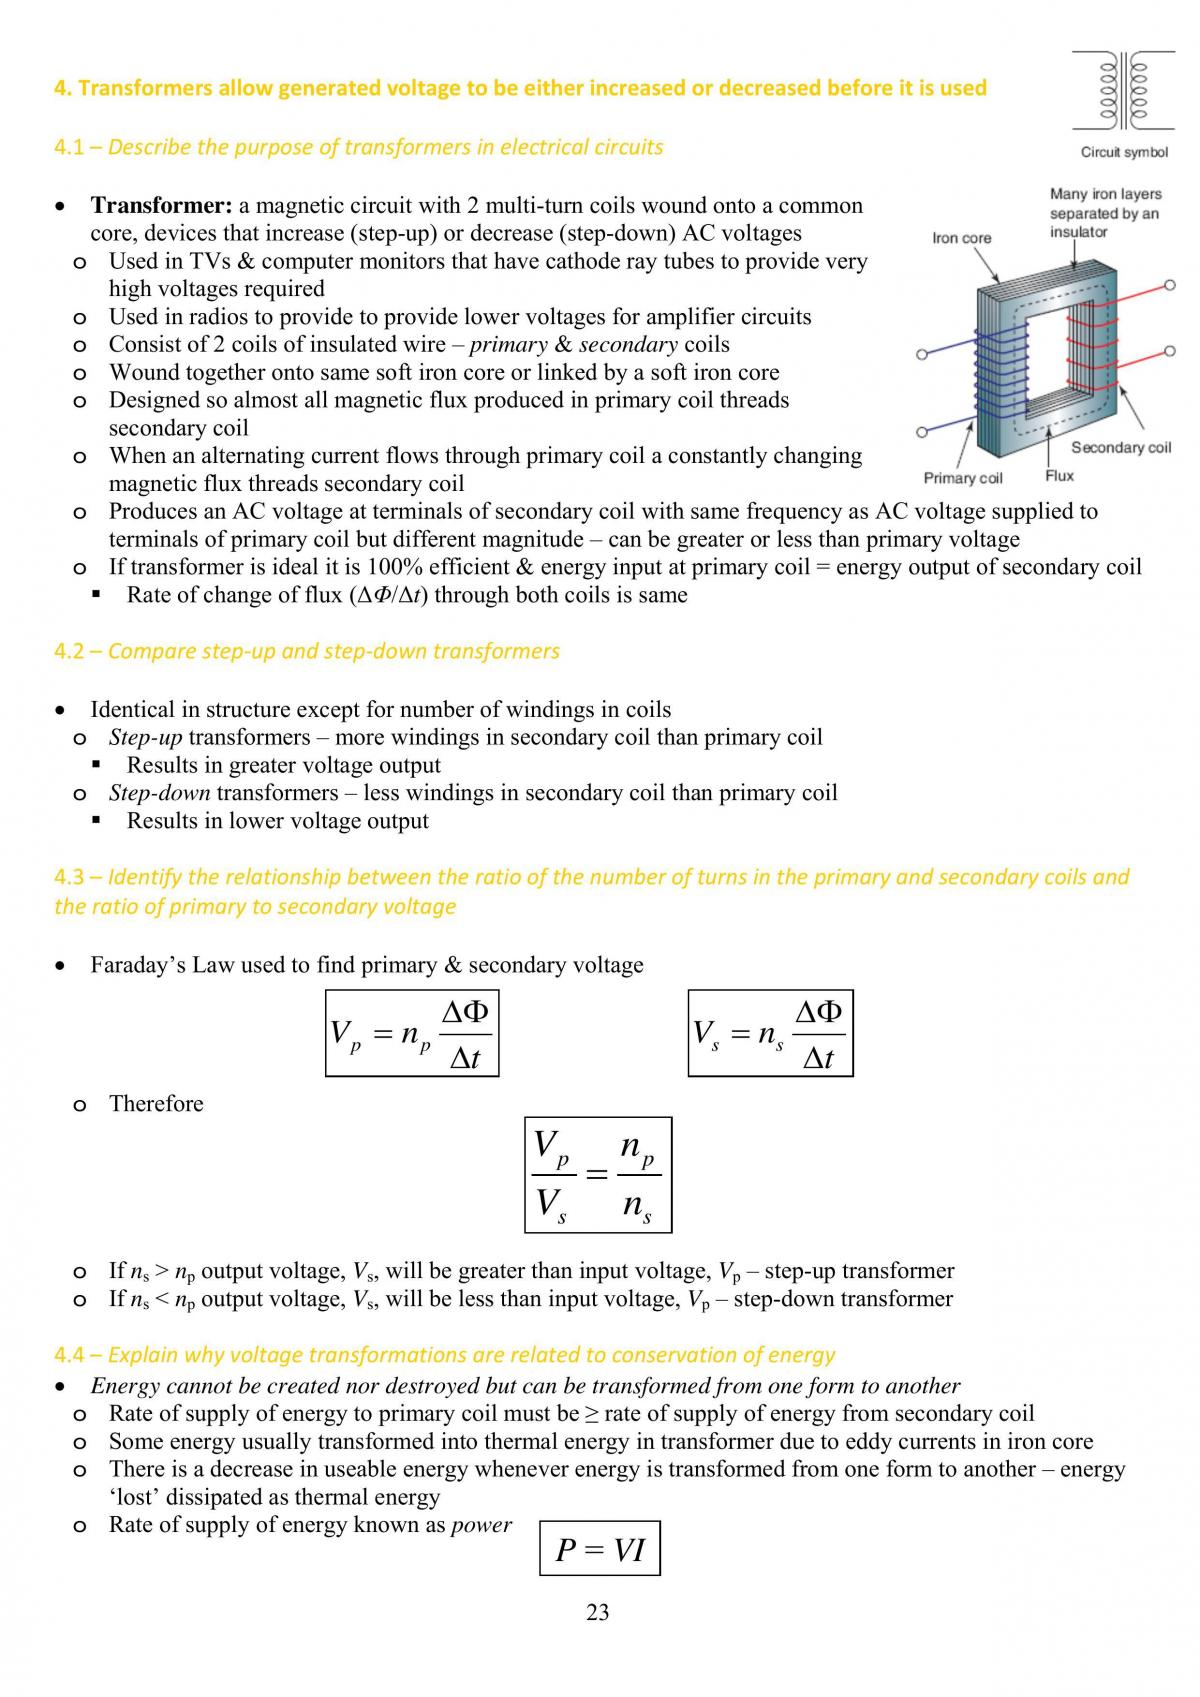 Hsc Physic Syllabus Notes On Motors And Generators - Page 23